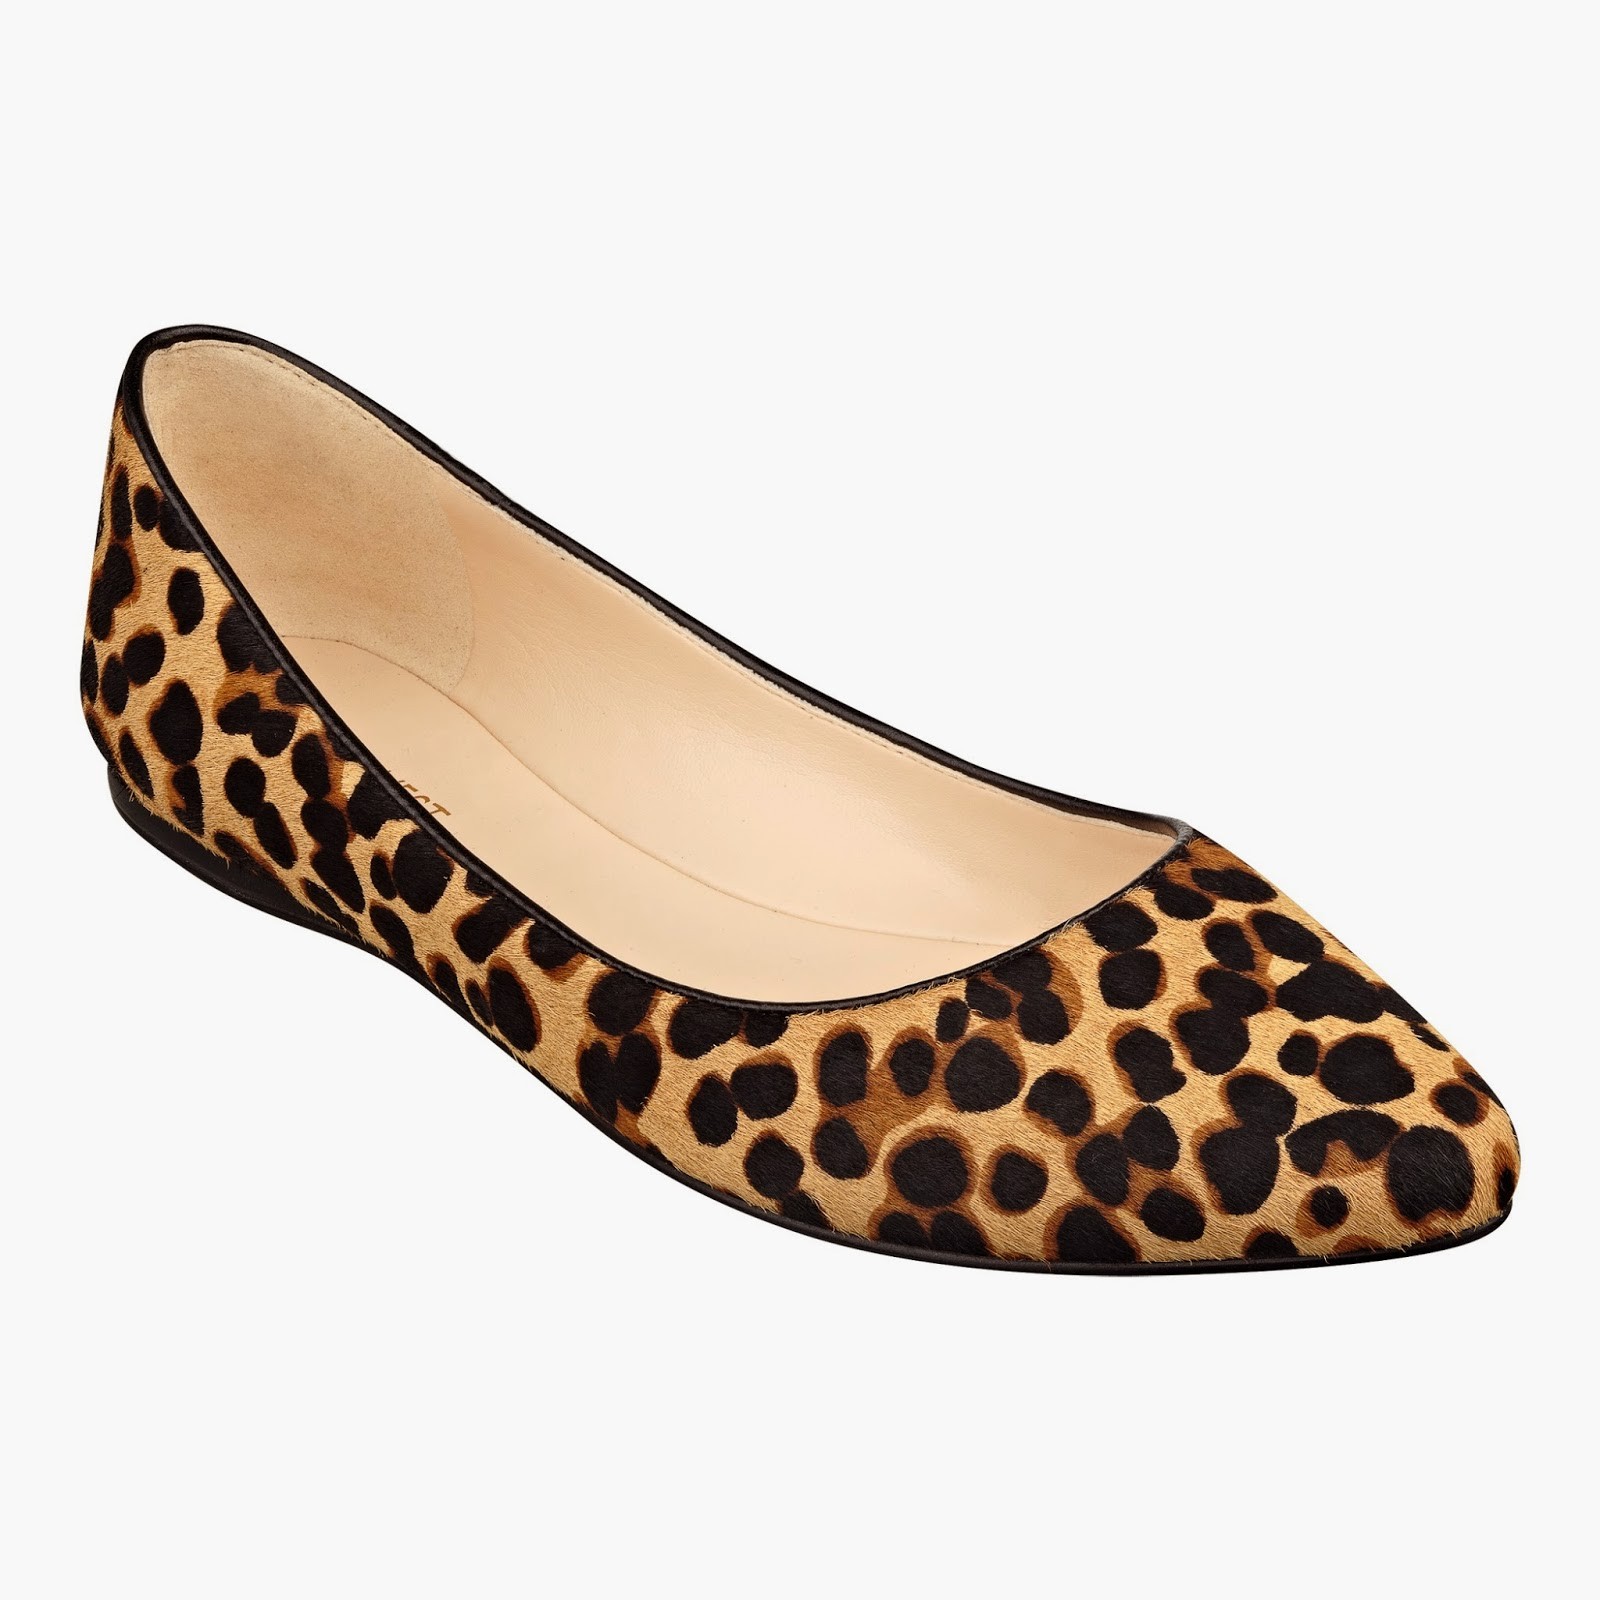 Flats are perfect for styling, with the slider taking centre stage with luxe faux fur and bow detailing. Got a party coming up? We're finishing our look with cool leopard print block heels or flats paired with a tulle midi dress and colourful crossbody bag.